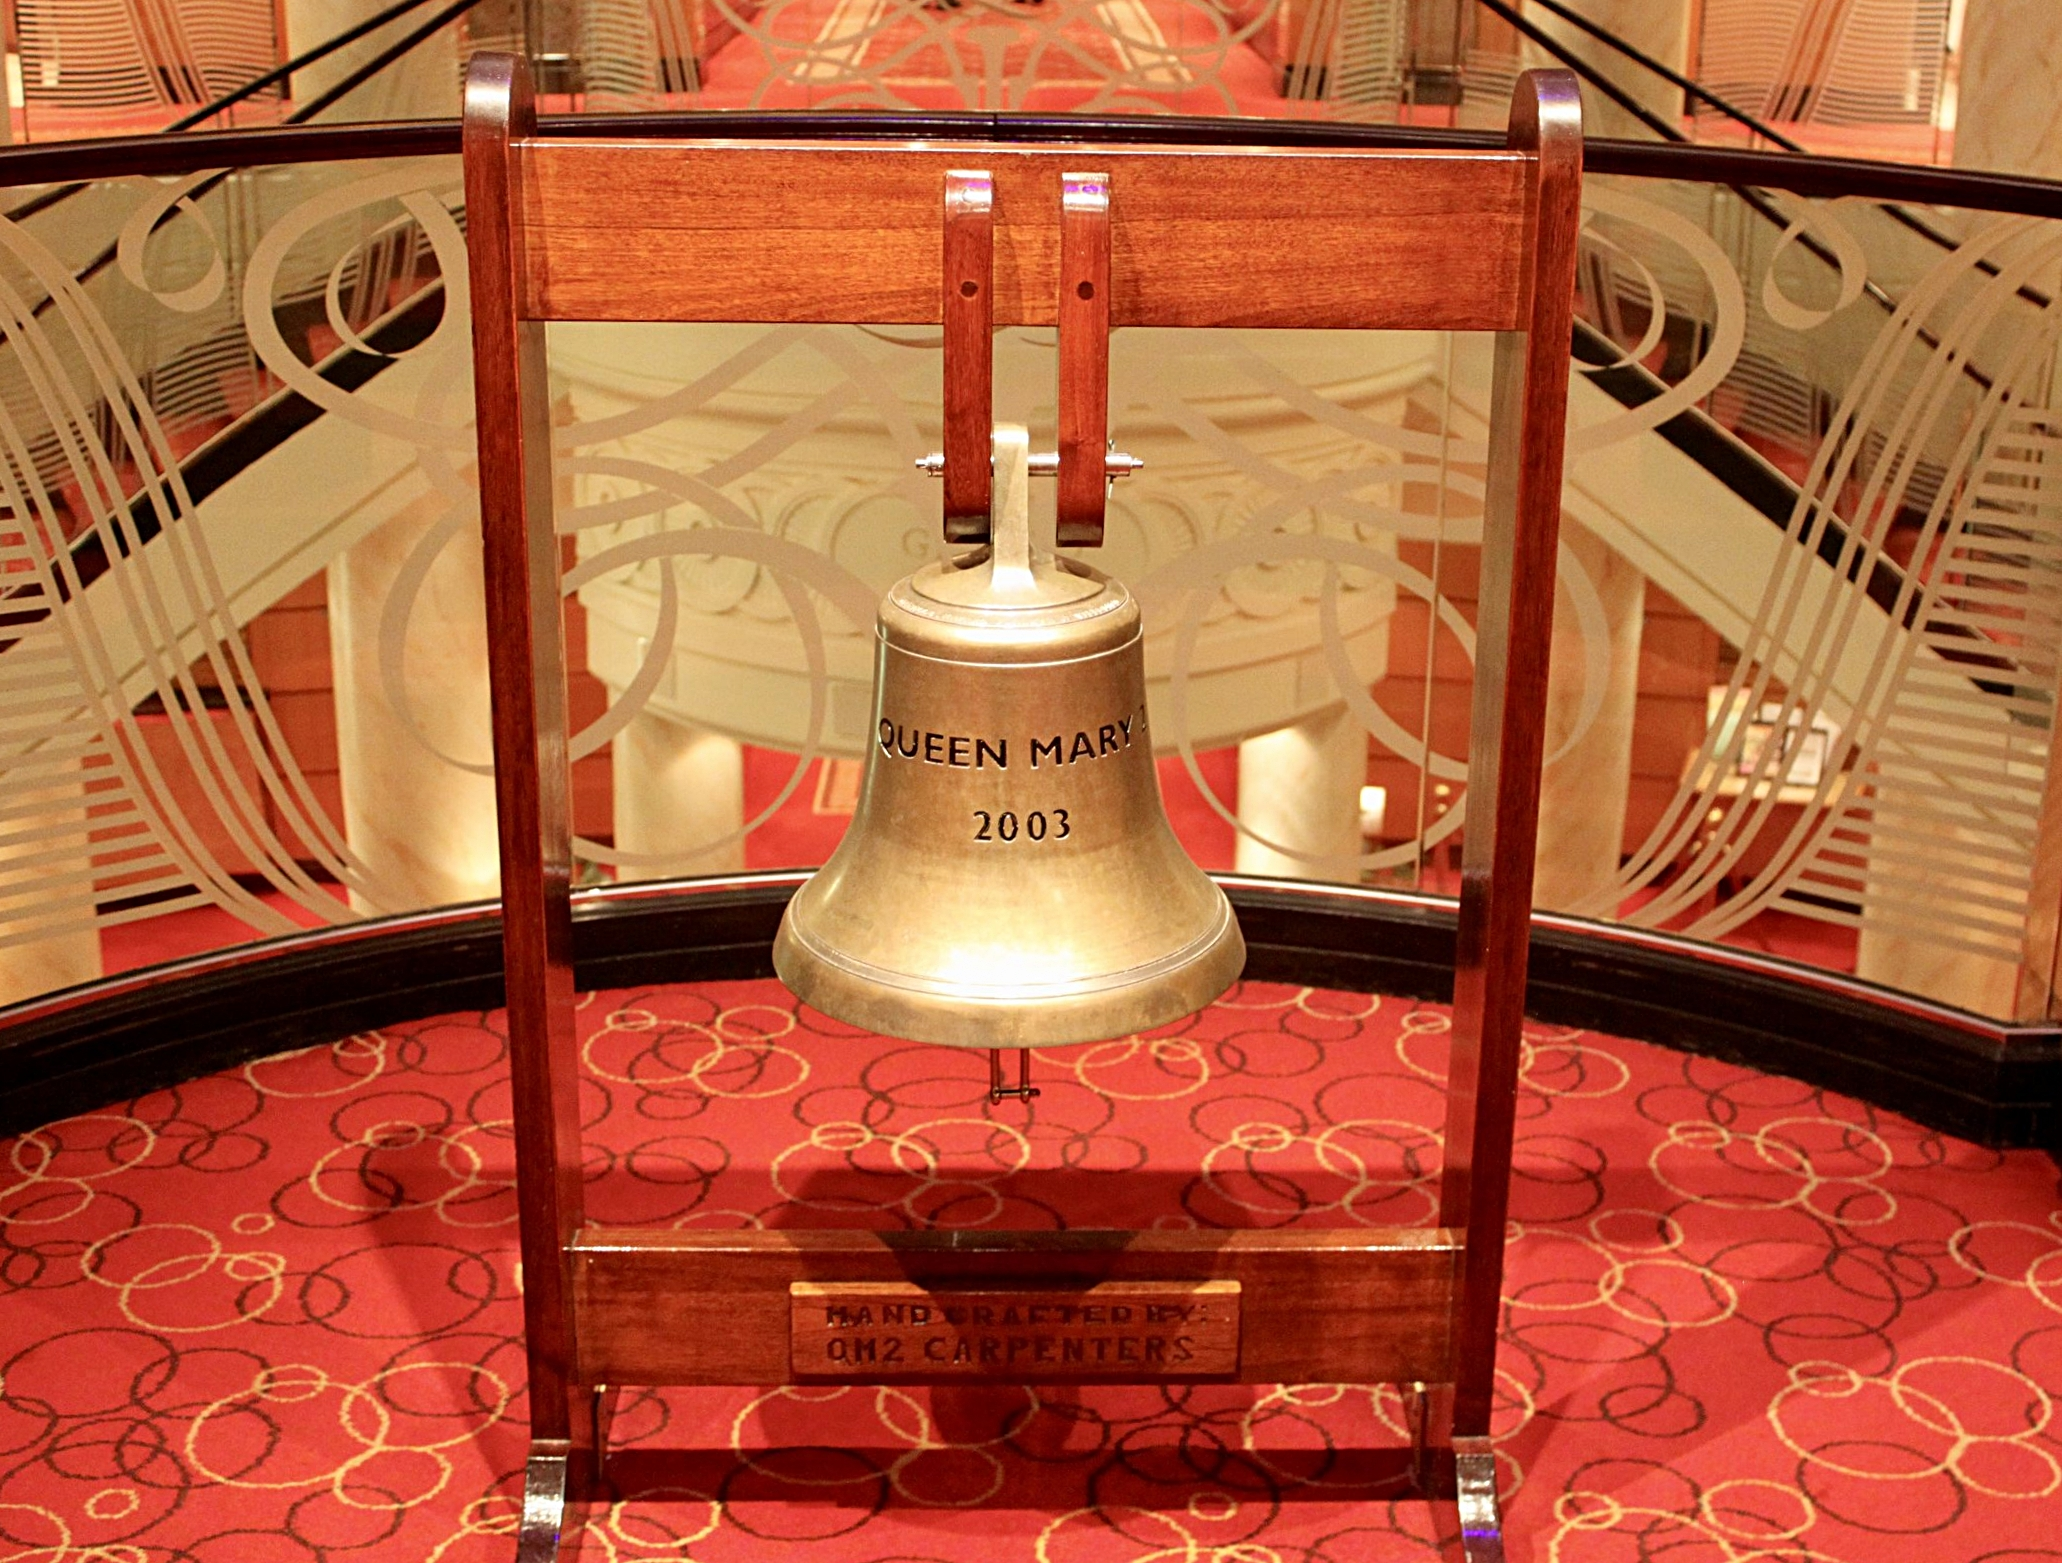 The infamous Queen Mary bell situated in the Grand Lobby of the Queen Mary 2.